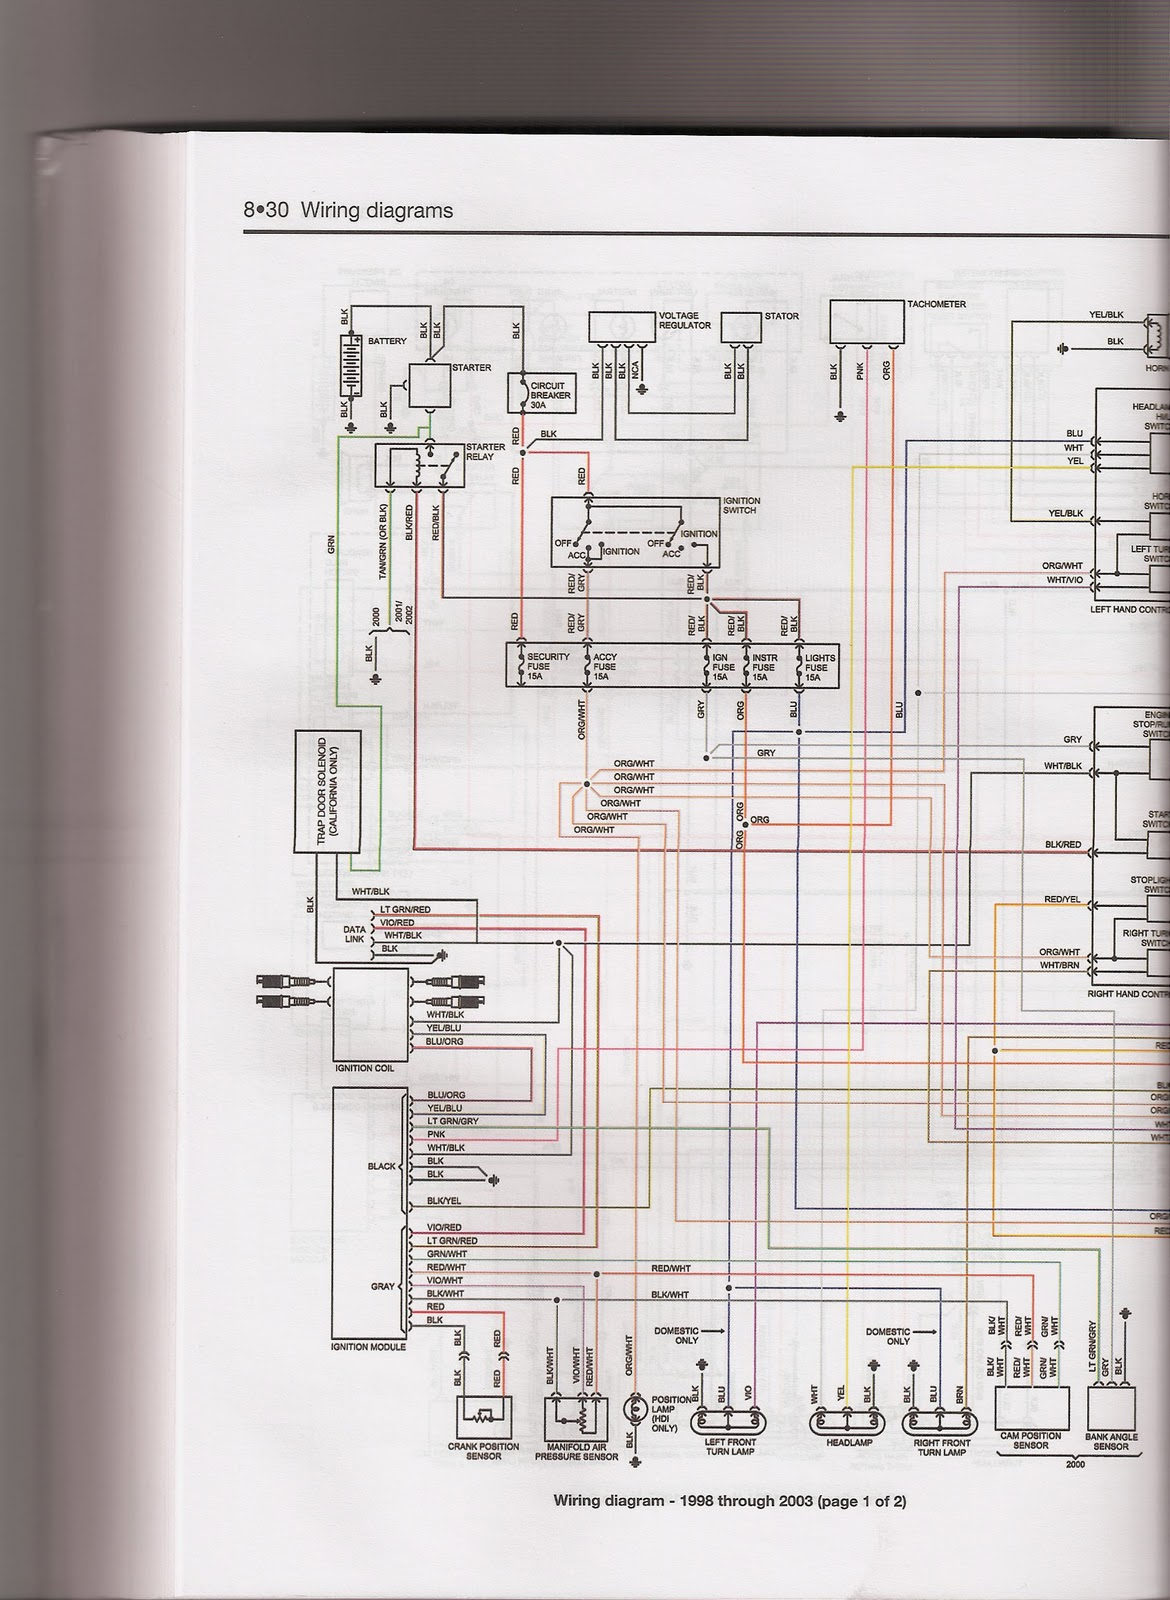 small resolution of 98 sportster wiring diagram reveolution of wiring diagram u2022 1986 harley sportster 883 wiring diagram